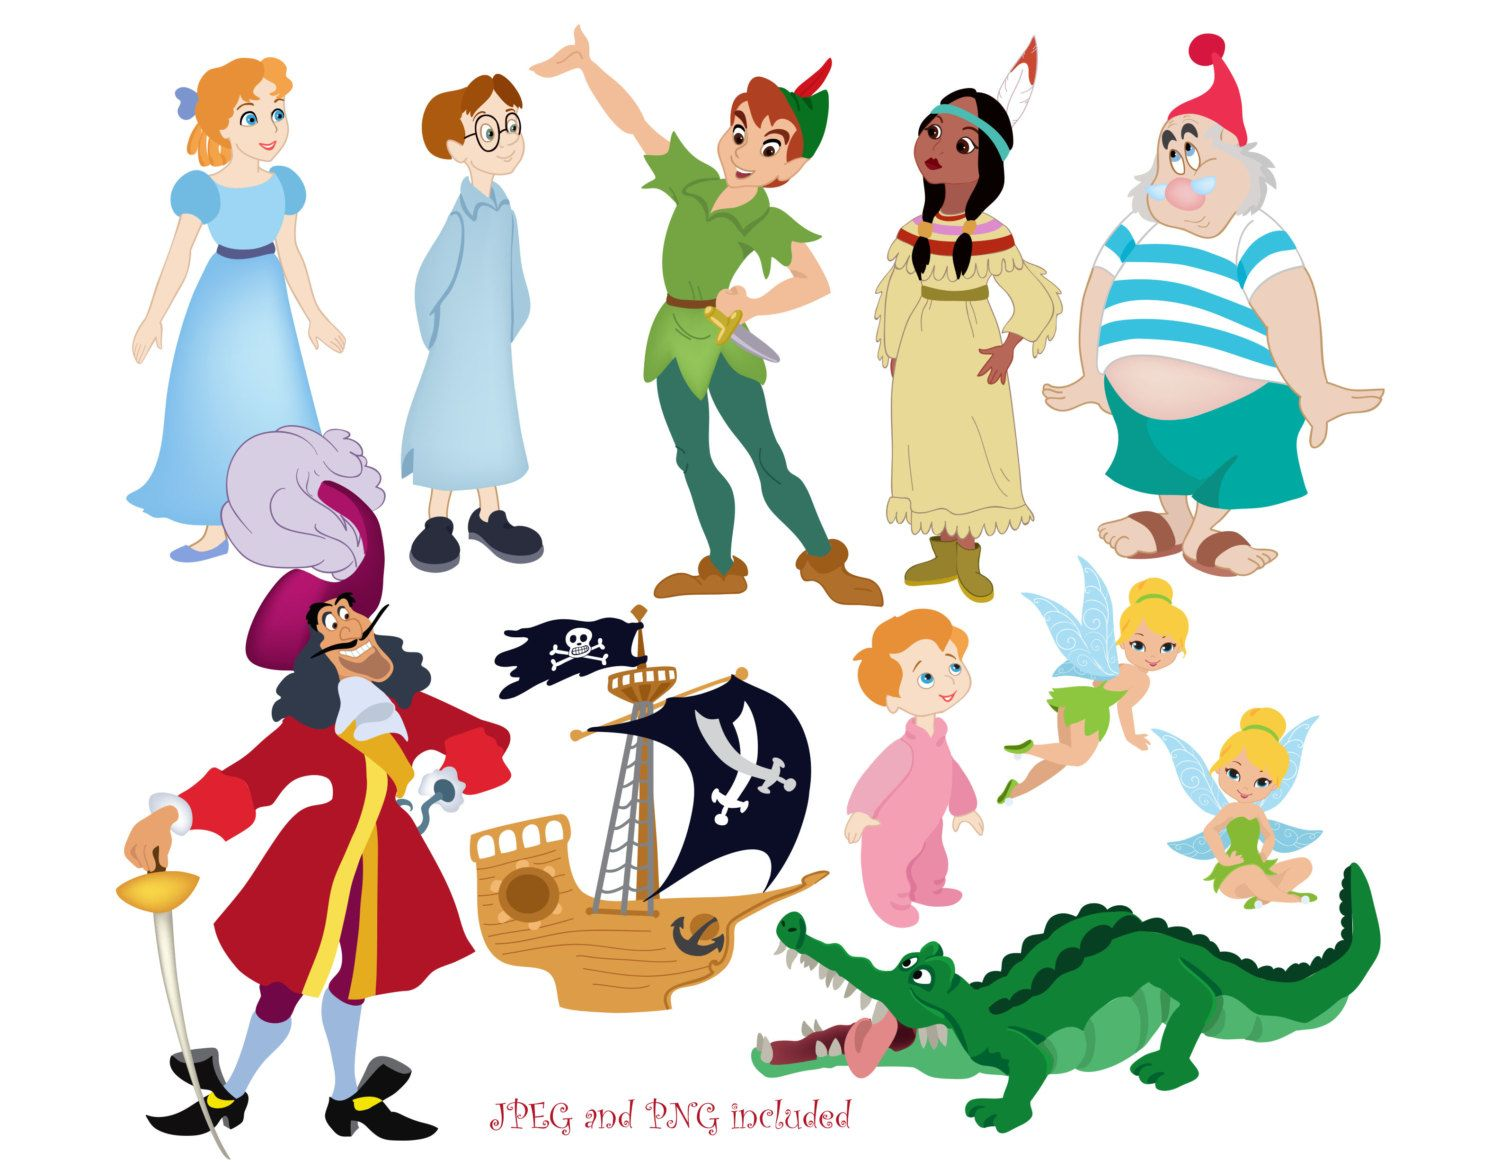 Digital Download Discoveries for PETER PAN CLIPART from EasyPeach.com